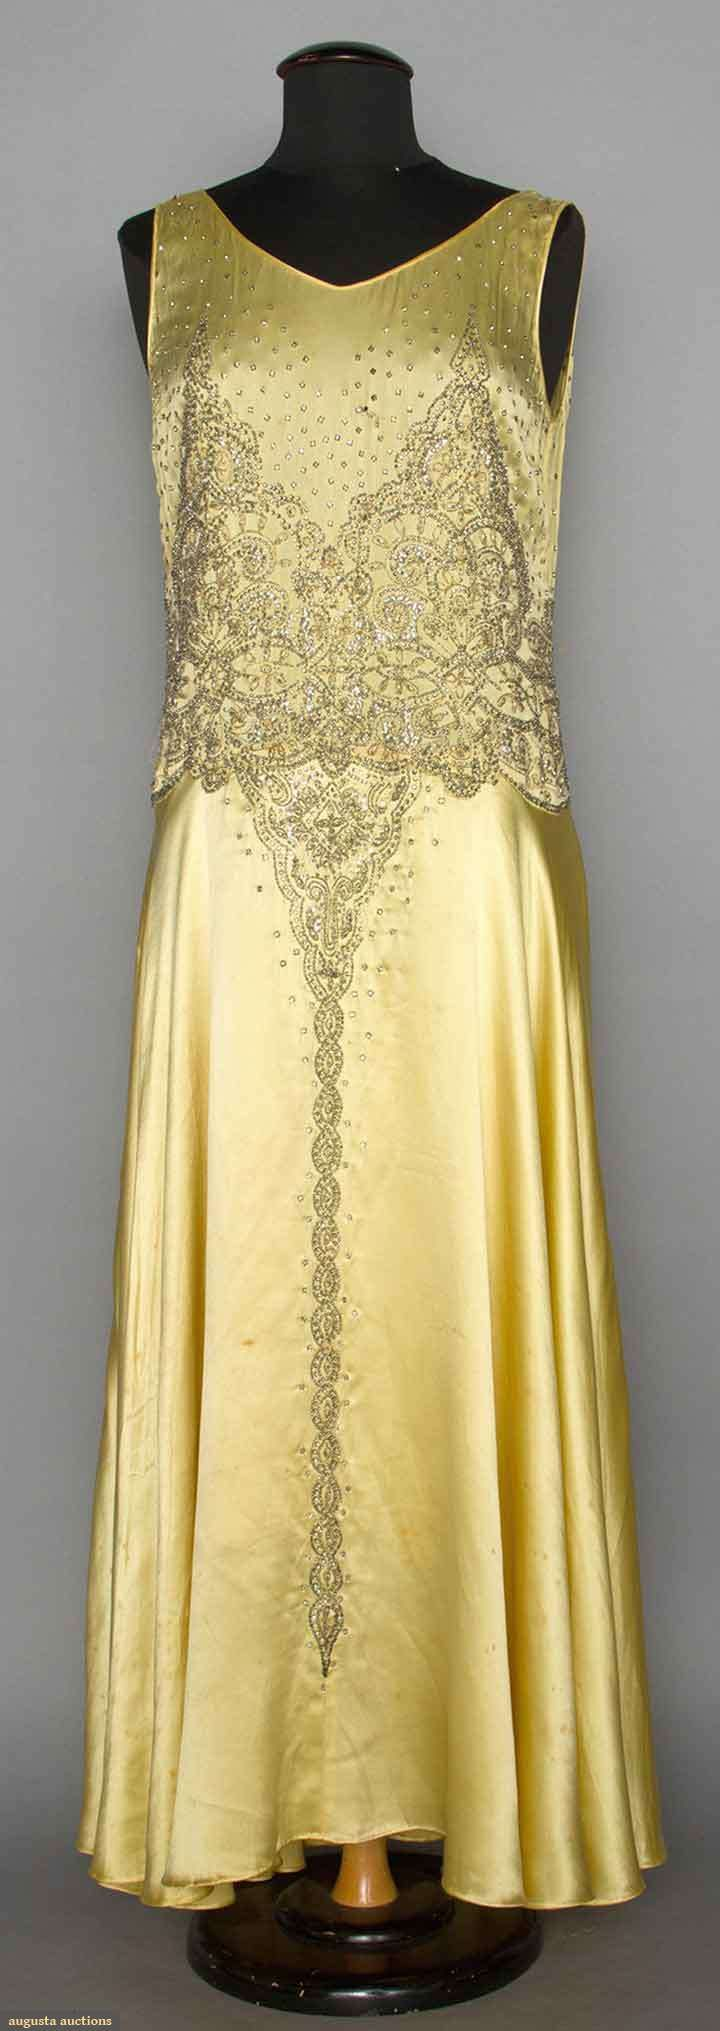 TWO SILK SATIN EVENING GOWNS, 1930s 1 yellow silk satin w/ silver beaded & sequined bodice; 1 black w/ lace trim.